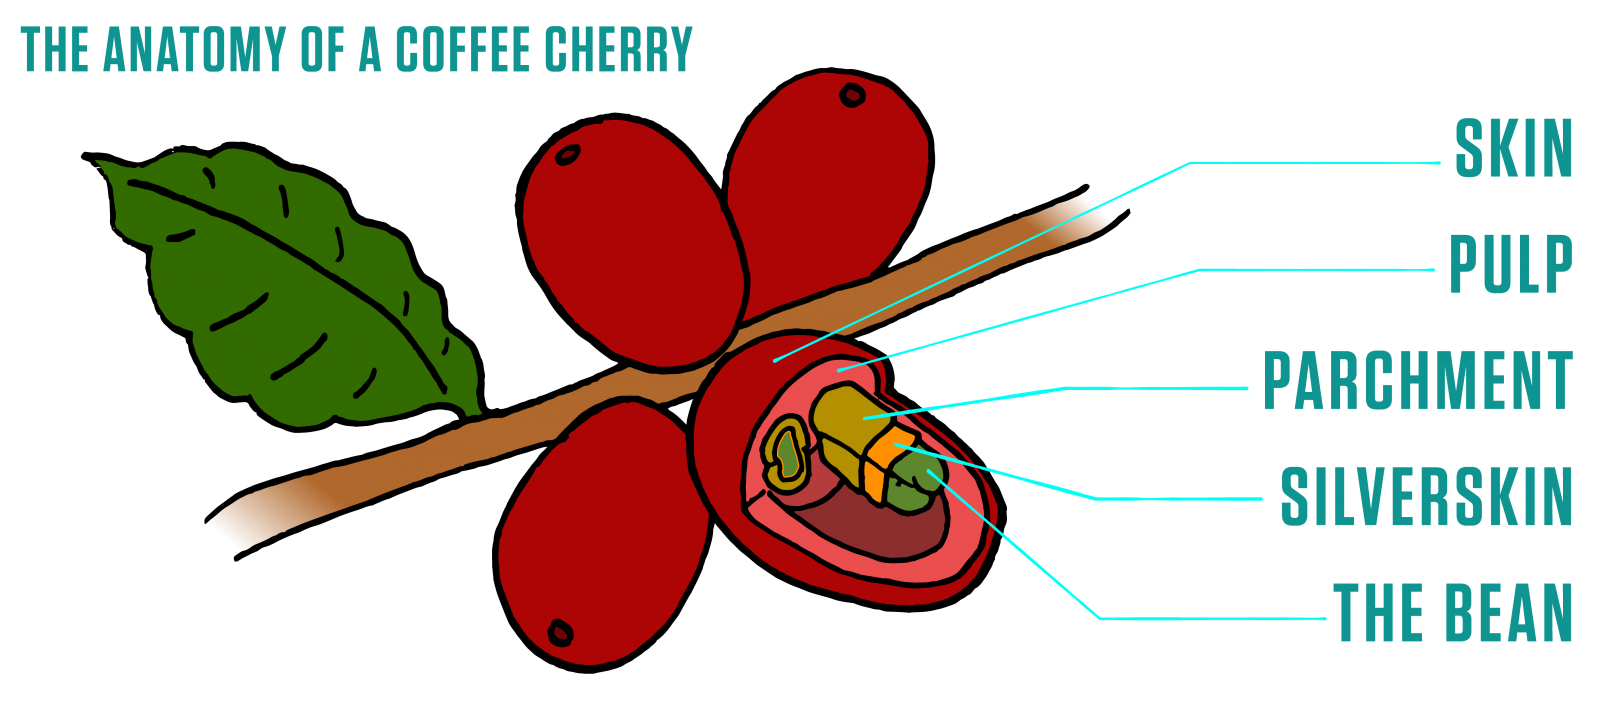 Plants clipart coffee tree. The story of metropolis